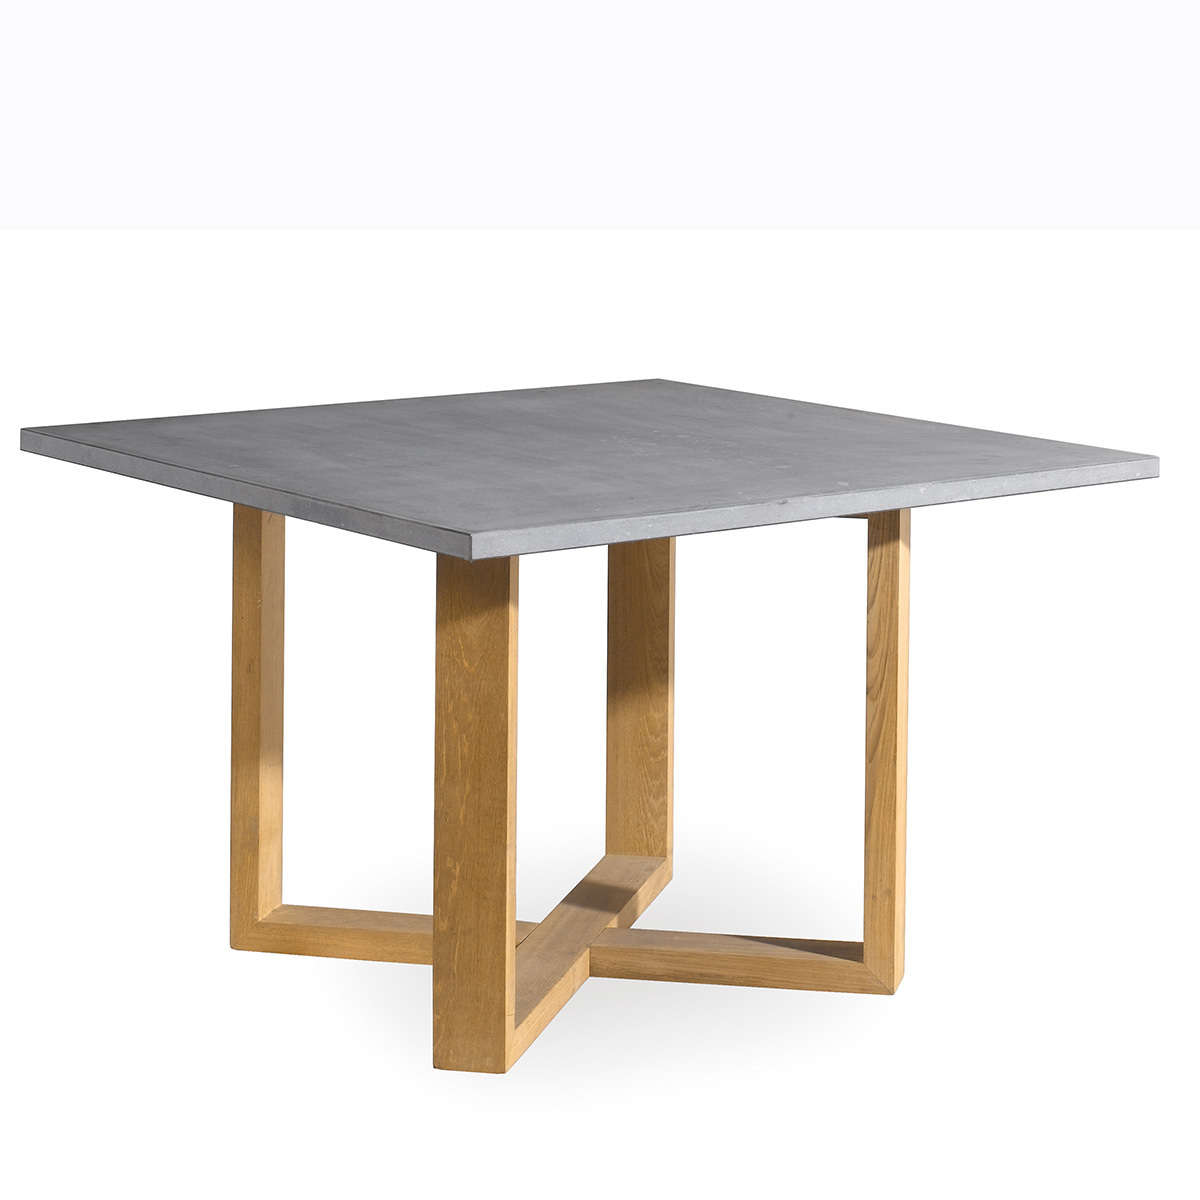 Siena Teak Dining Table